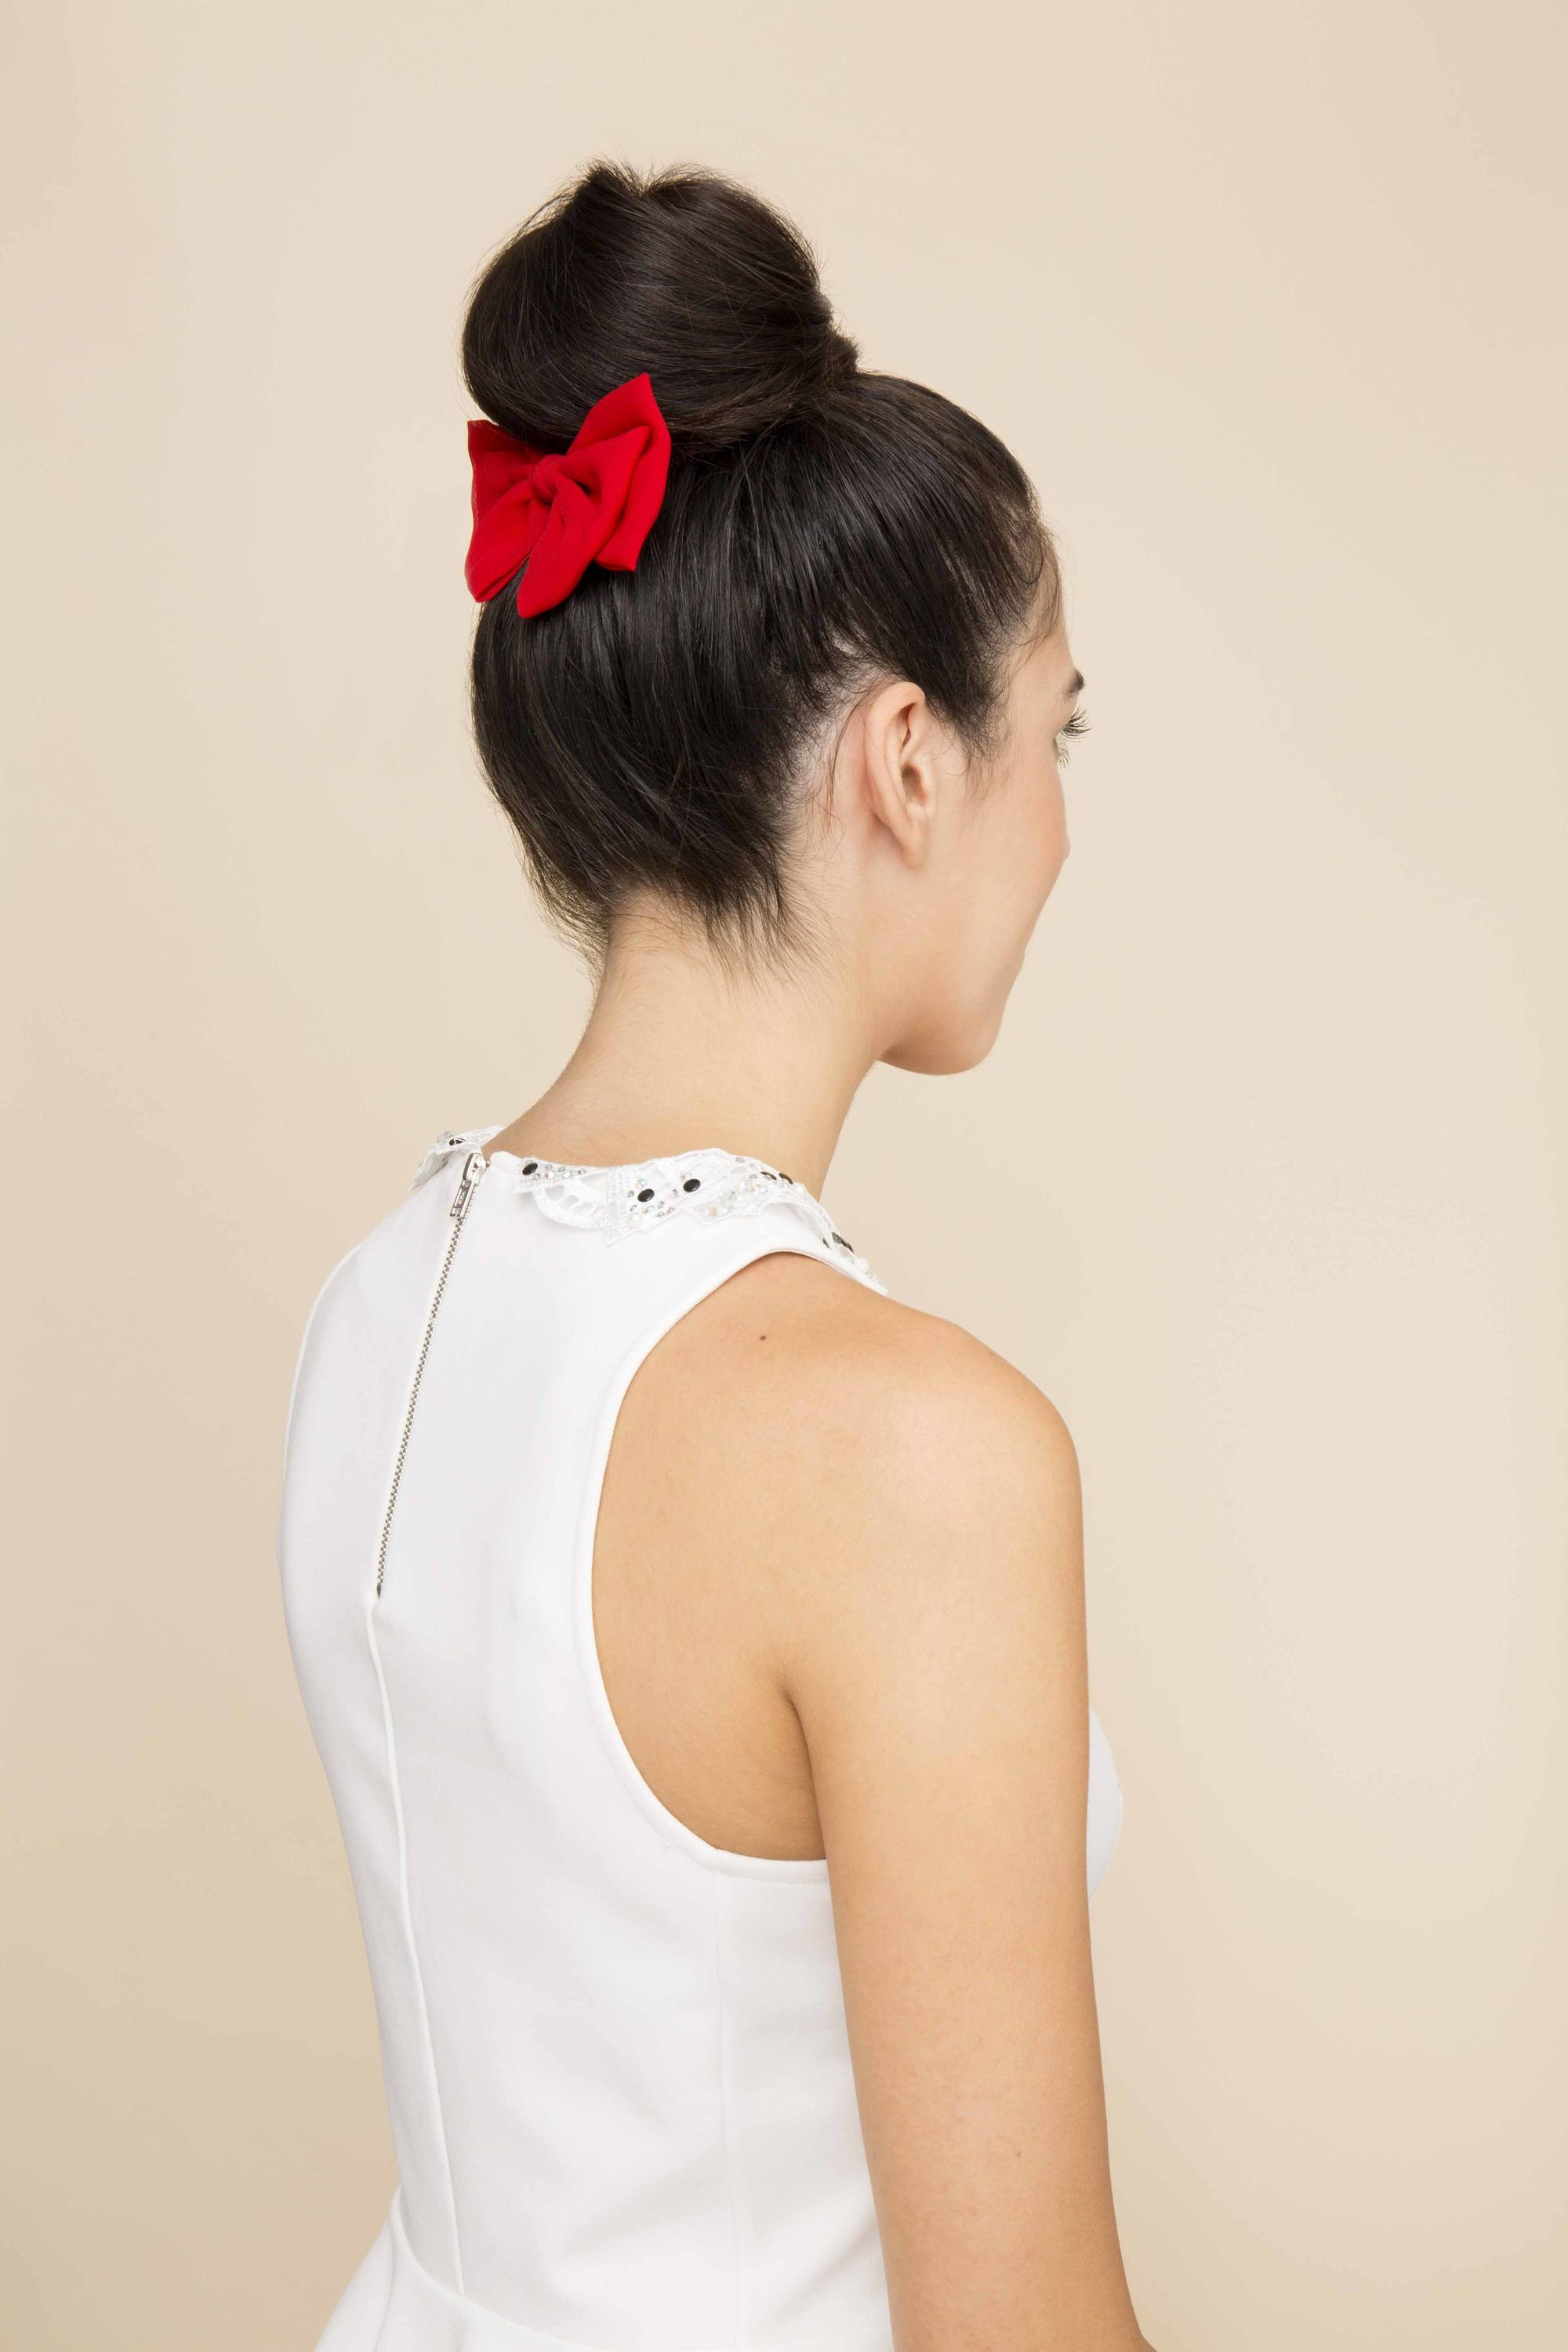 Bows and buns are perfect quirky hairstyles match!